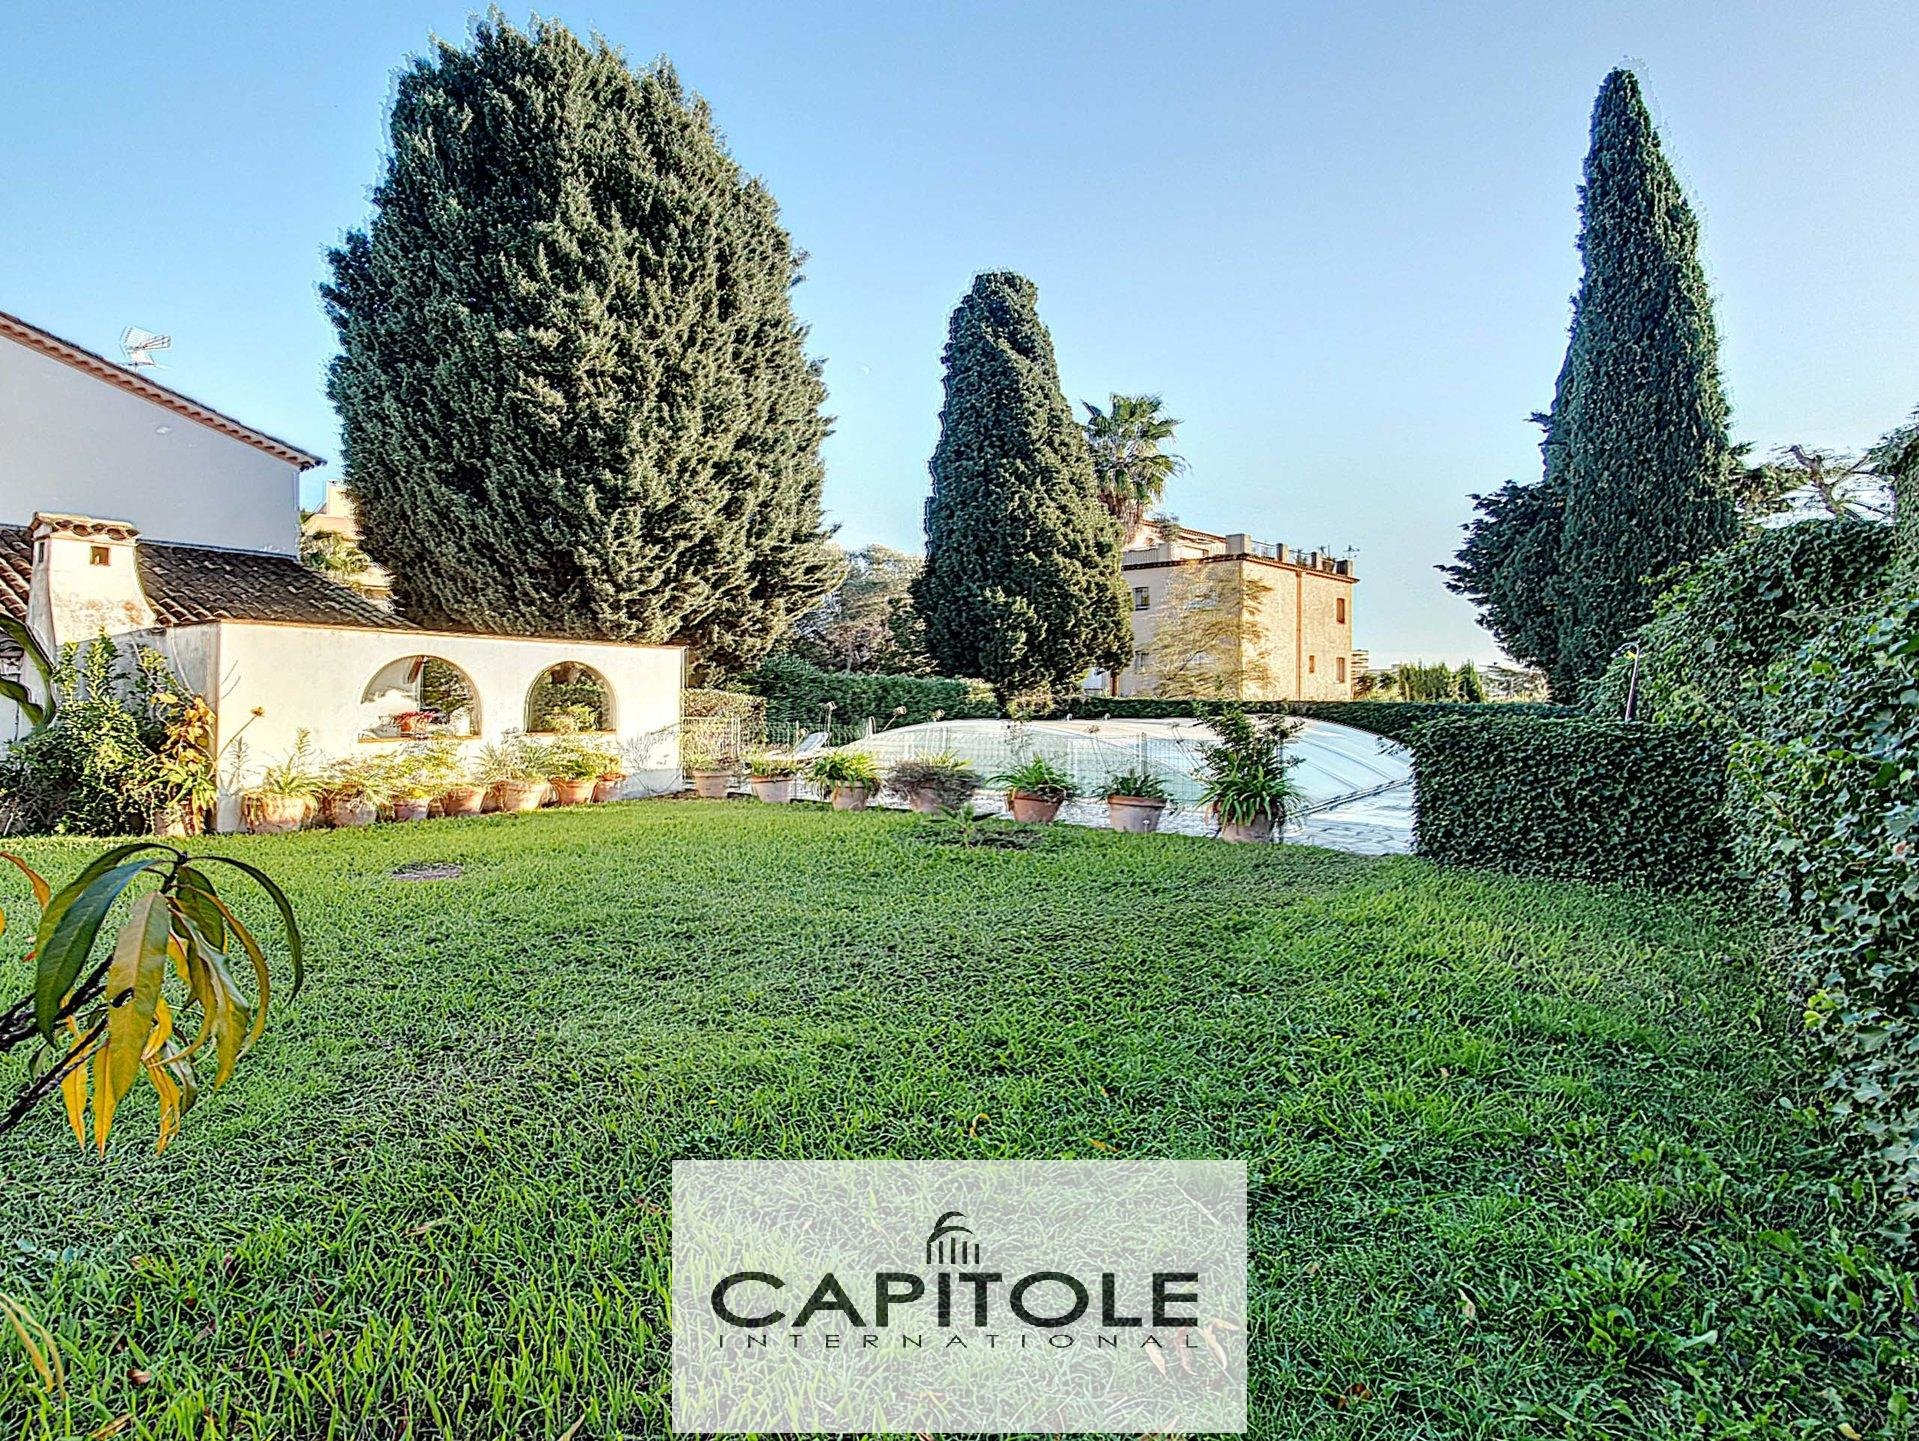 For sale, Antibes near city center, 2 detached villas, flat grounds, swimming pool, garage